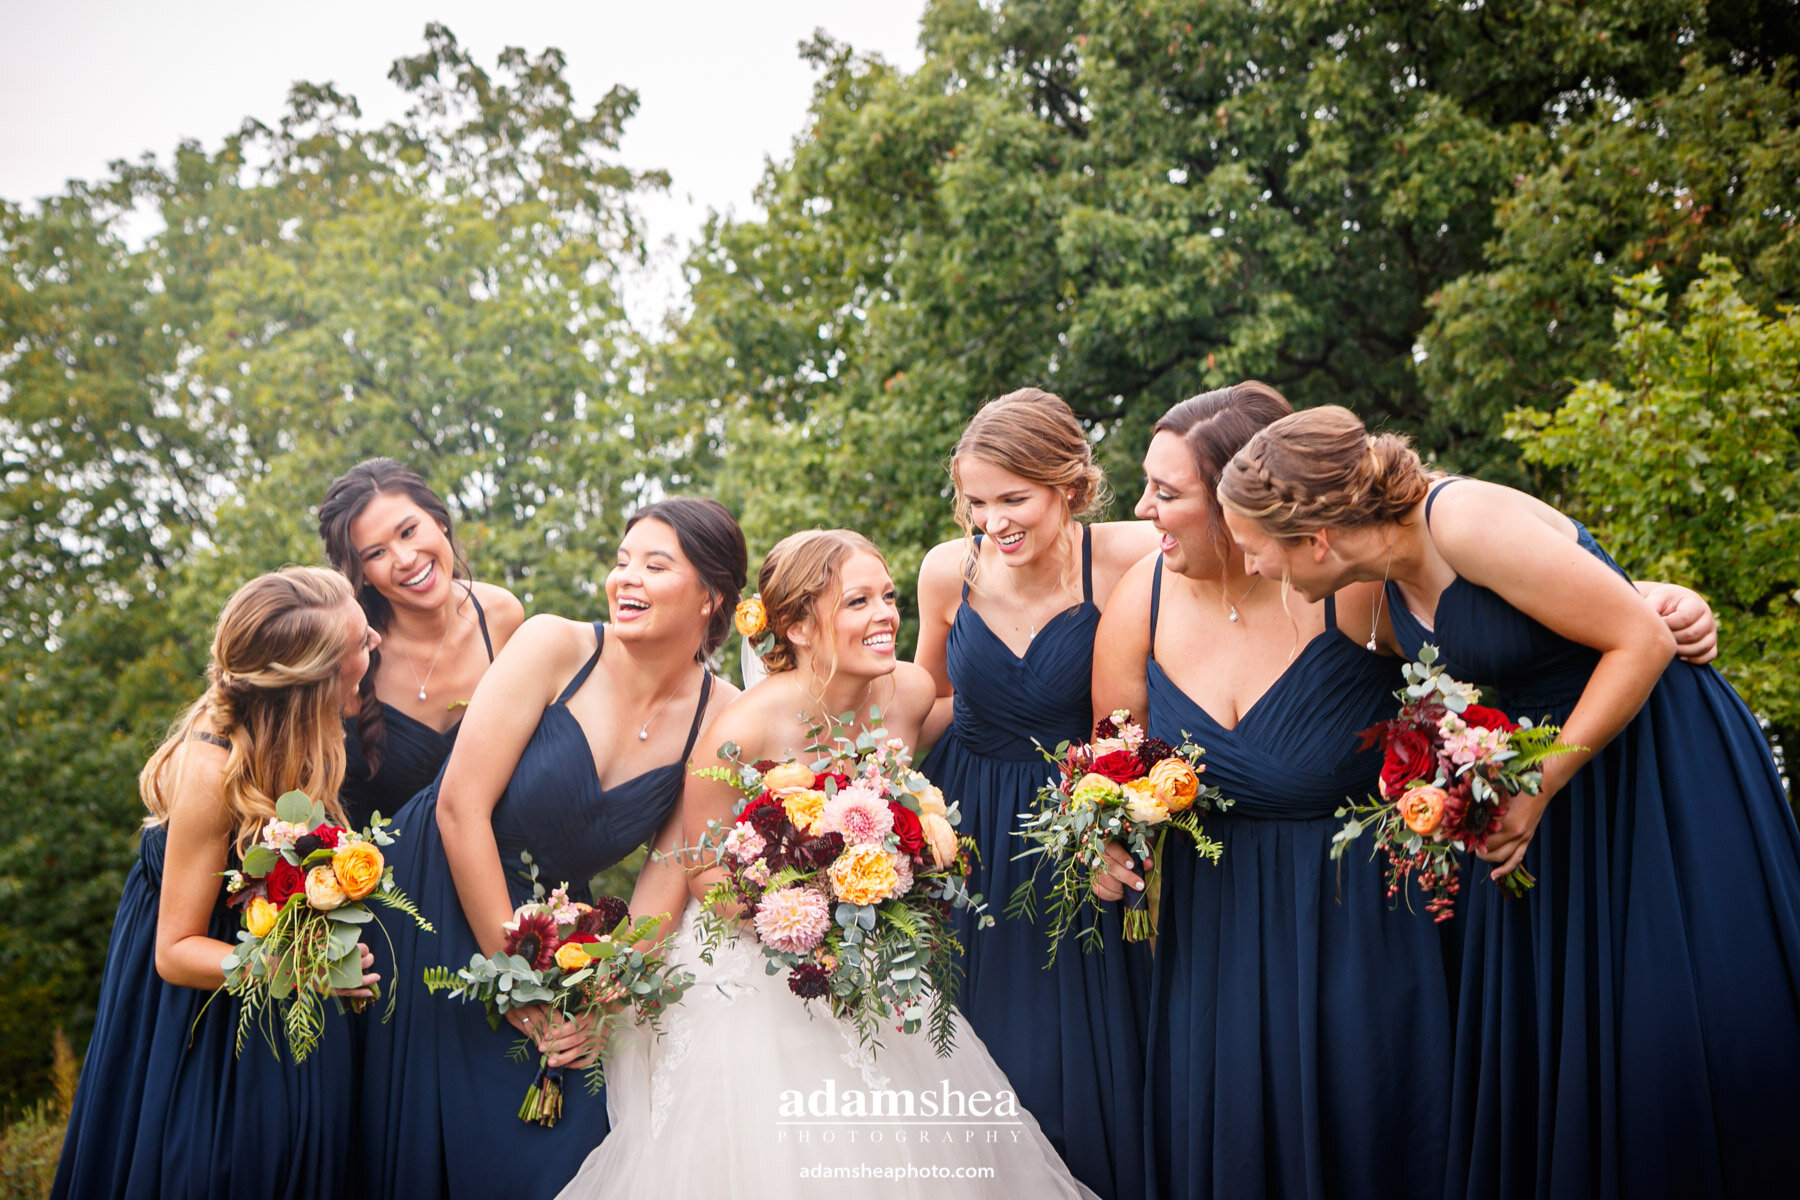 Gorgeous Wedding Fields at the Reserve - Stoughton WI - Adam Shea Photography - Bridesmaids